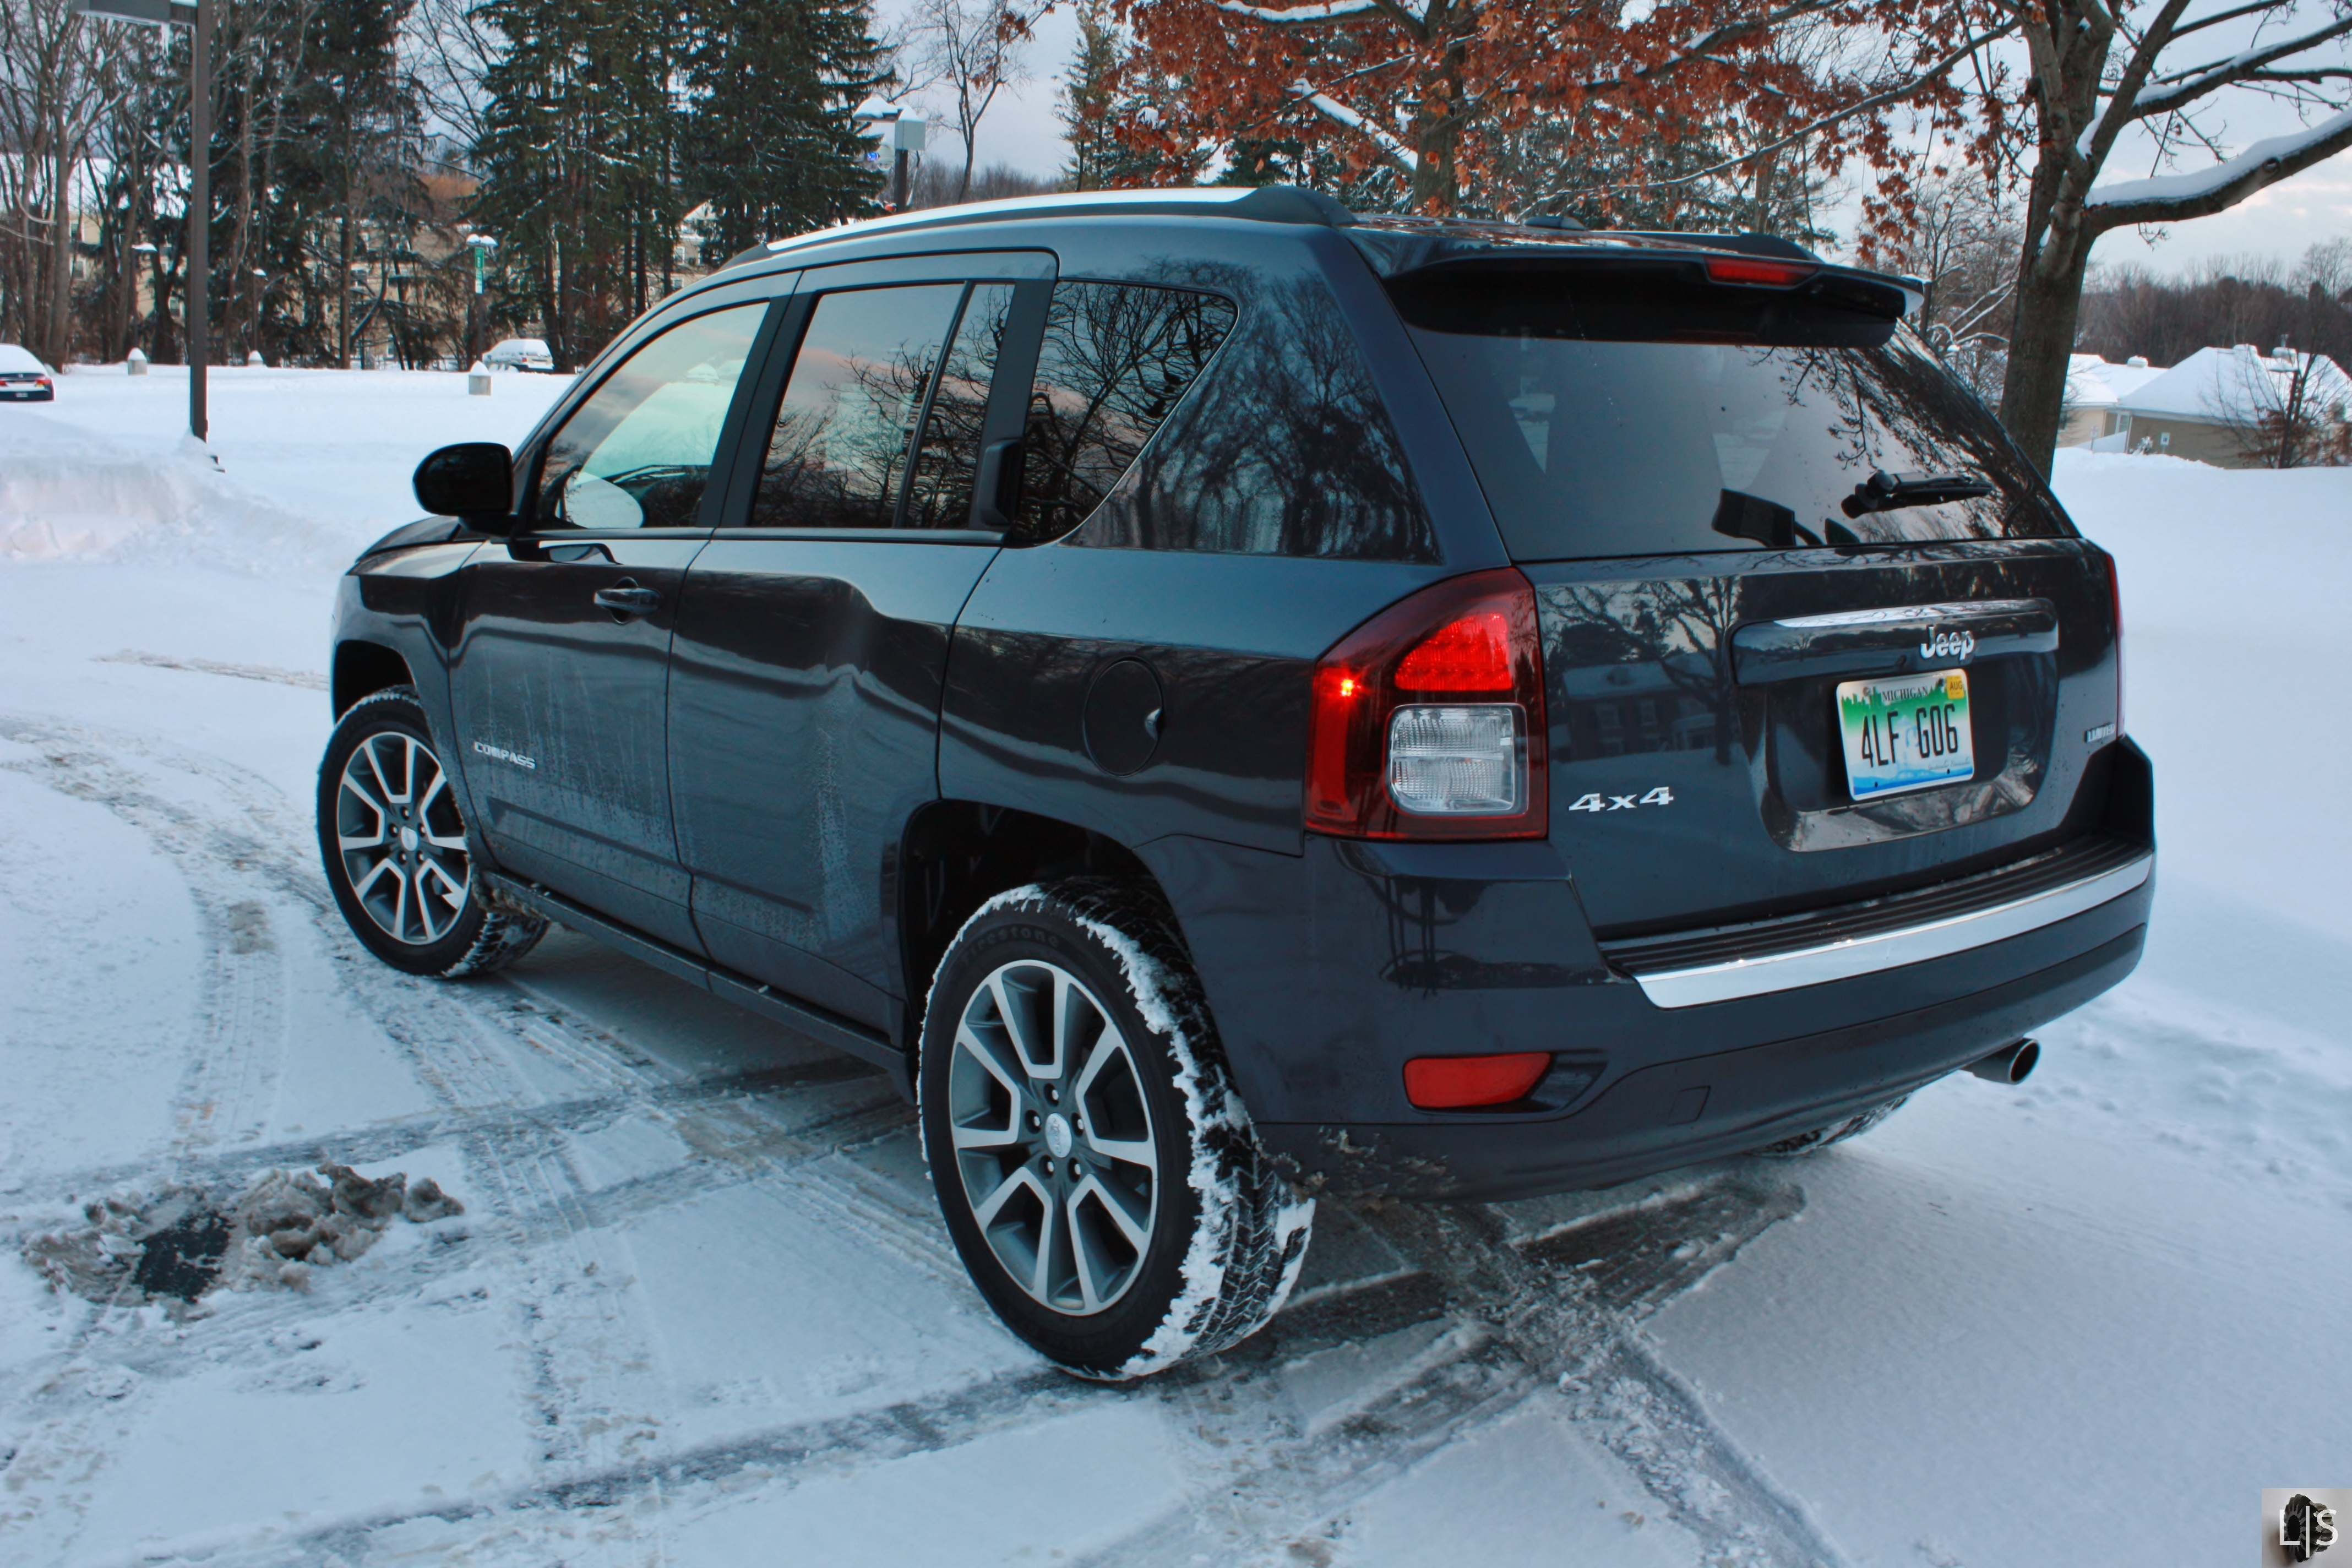 jeep compass offroad images jeep compass forum. Black Bedroom Furniture Sets. Home Design Ideas